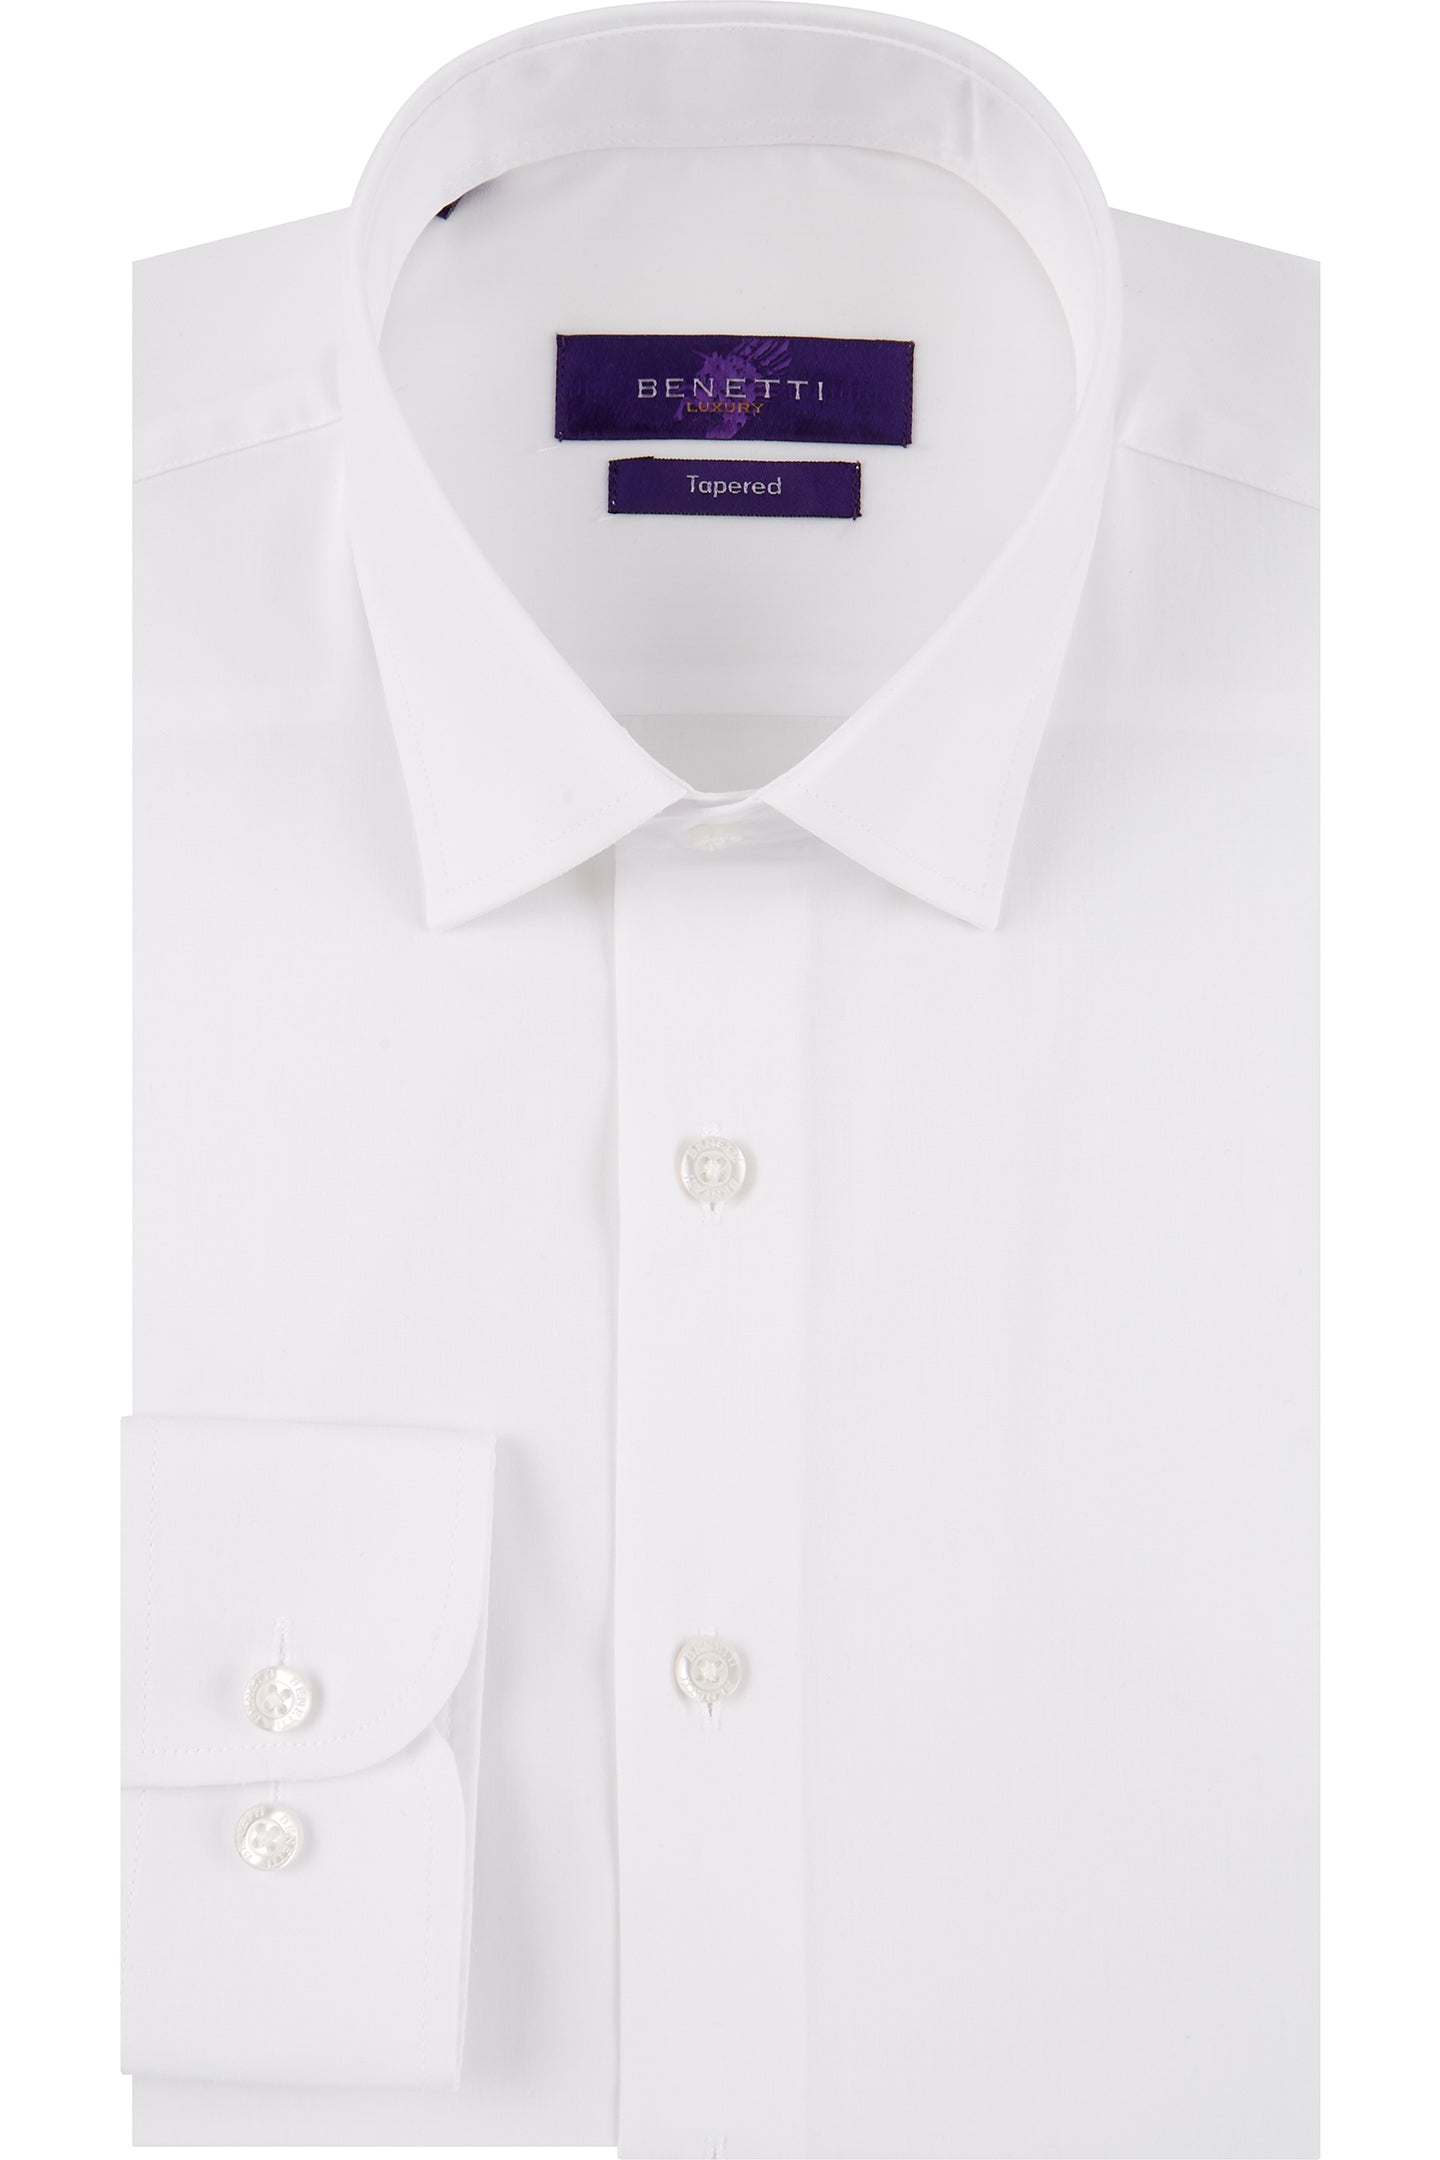 Benetti Tailored White Shirt